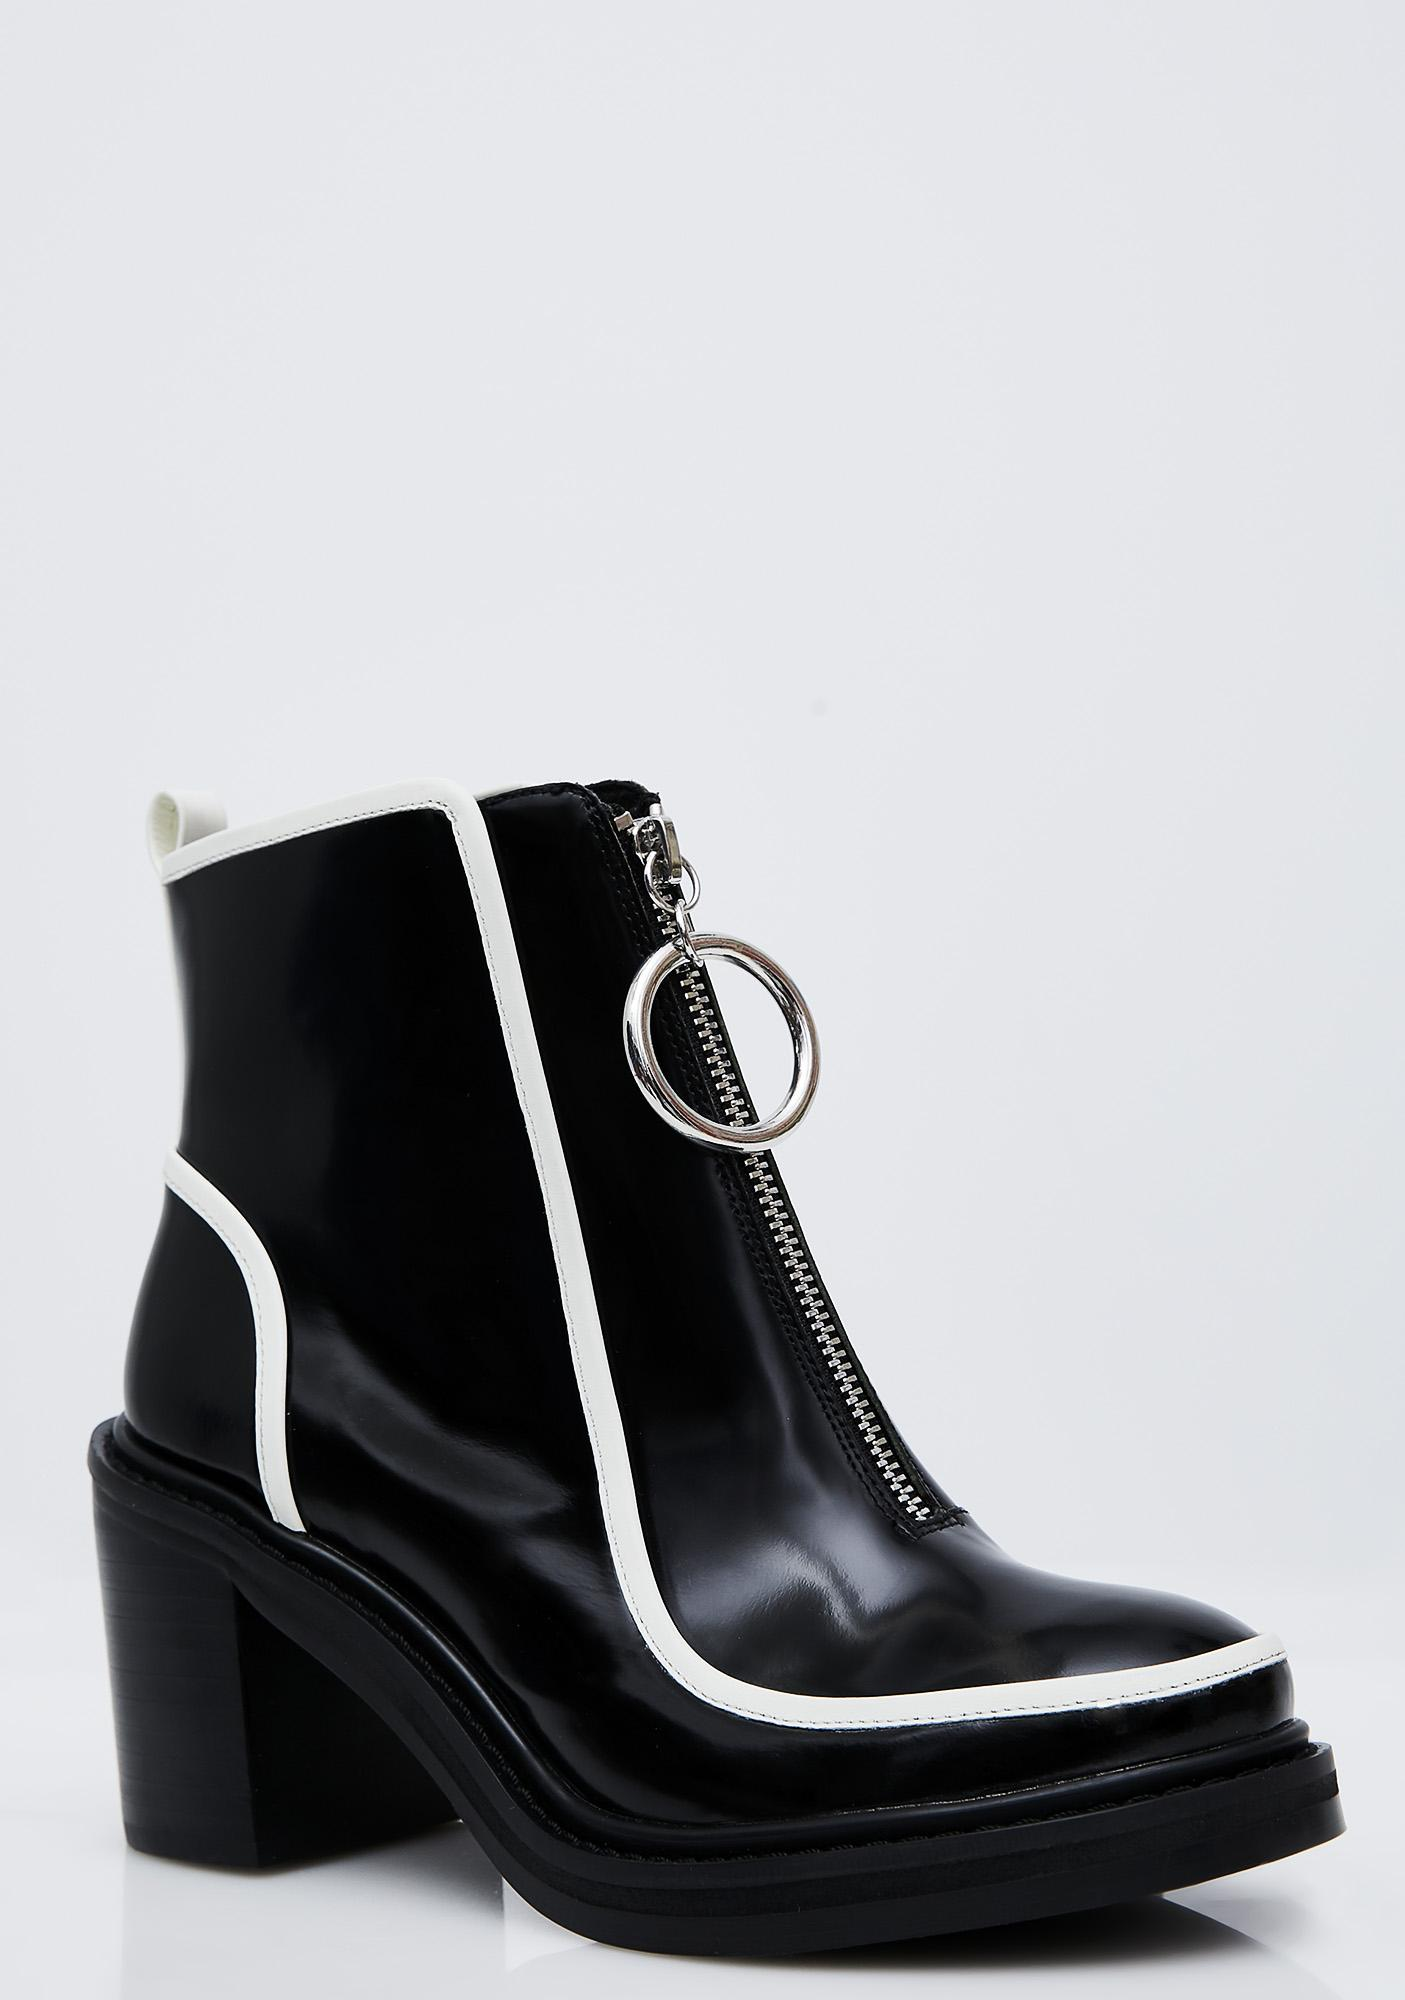 Shellys London Freya Zip-Up Booties